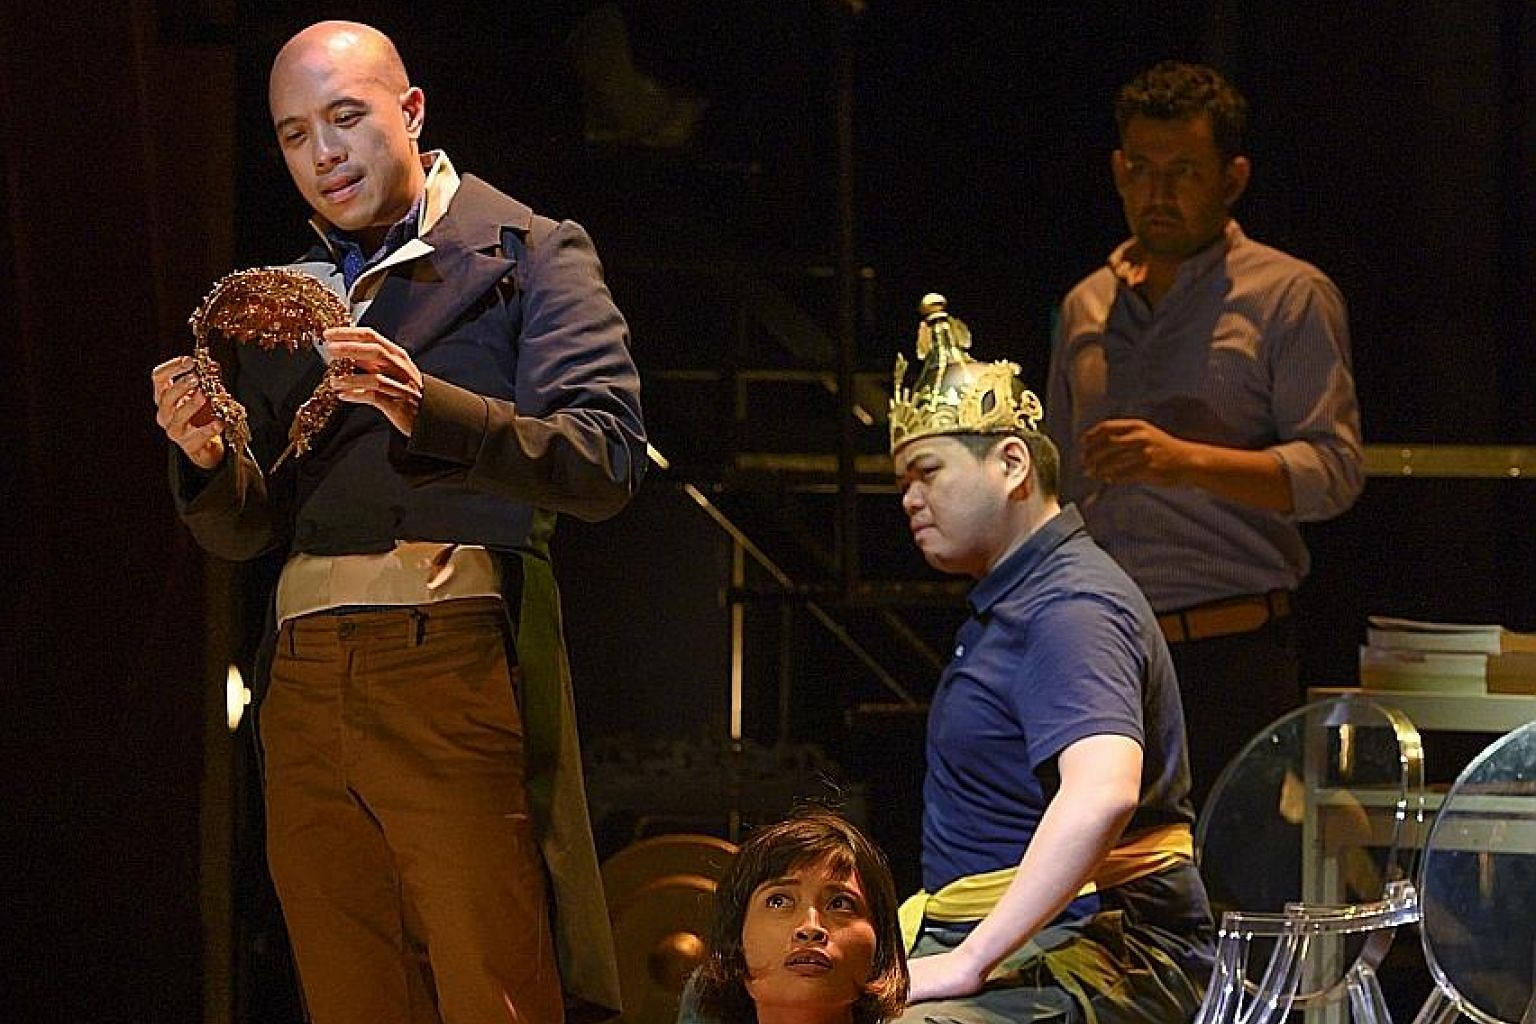 The ensemble cast throw themselves into lengthy recitatives and recreations with commendable energy. From left: Brendon Fernandez, Umi Kalthum Ismail (seated on floor), Chong Woon Yong and Ghafir Akbar.